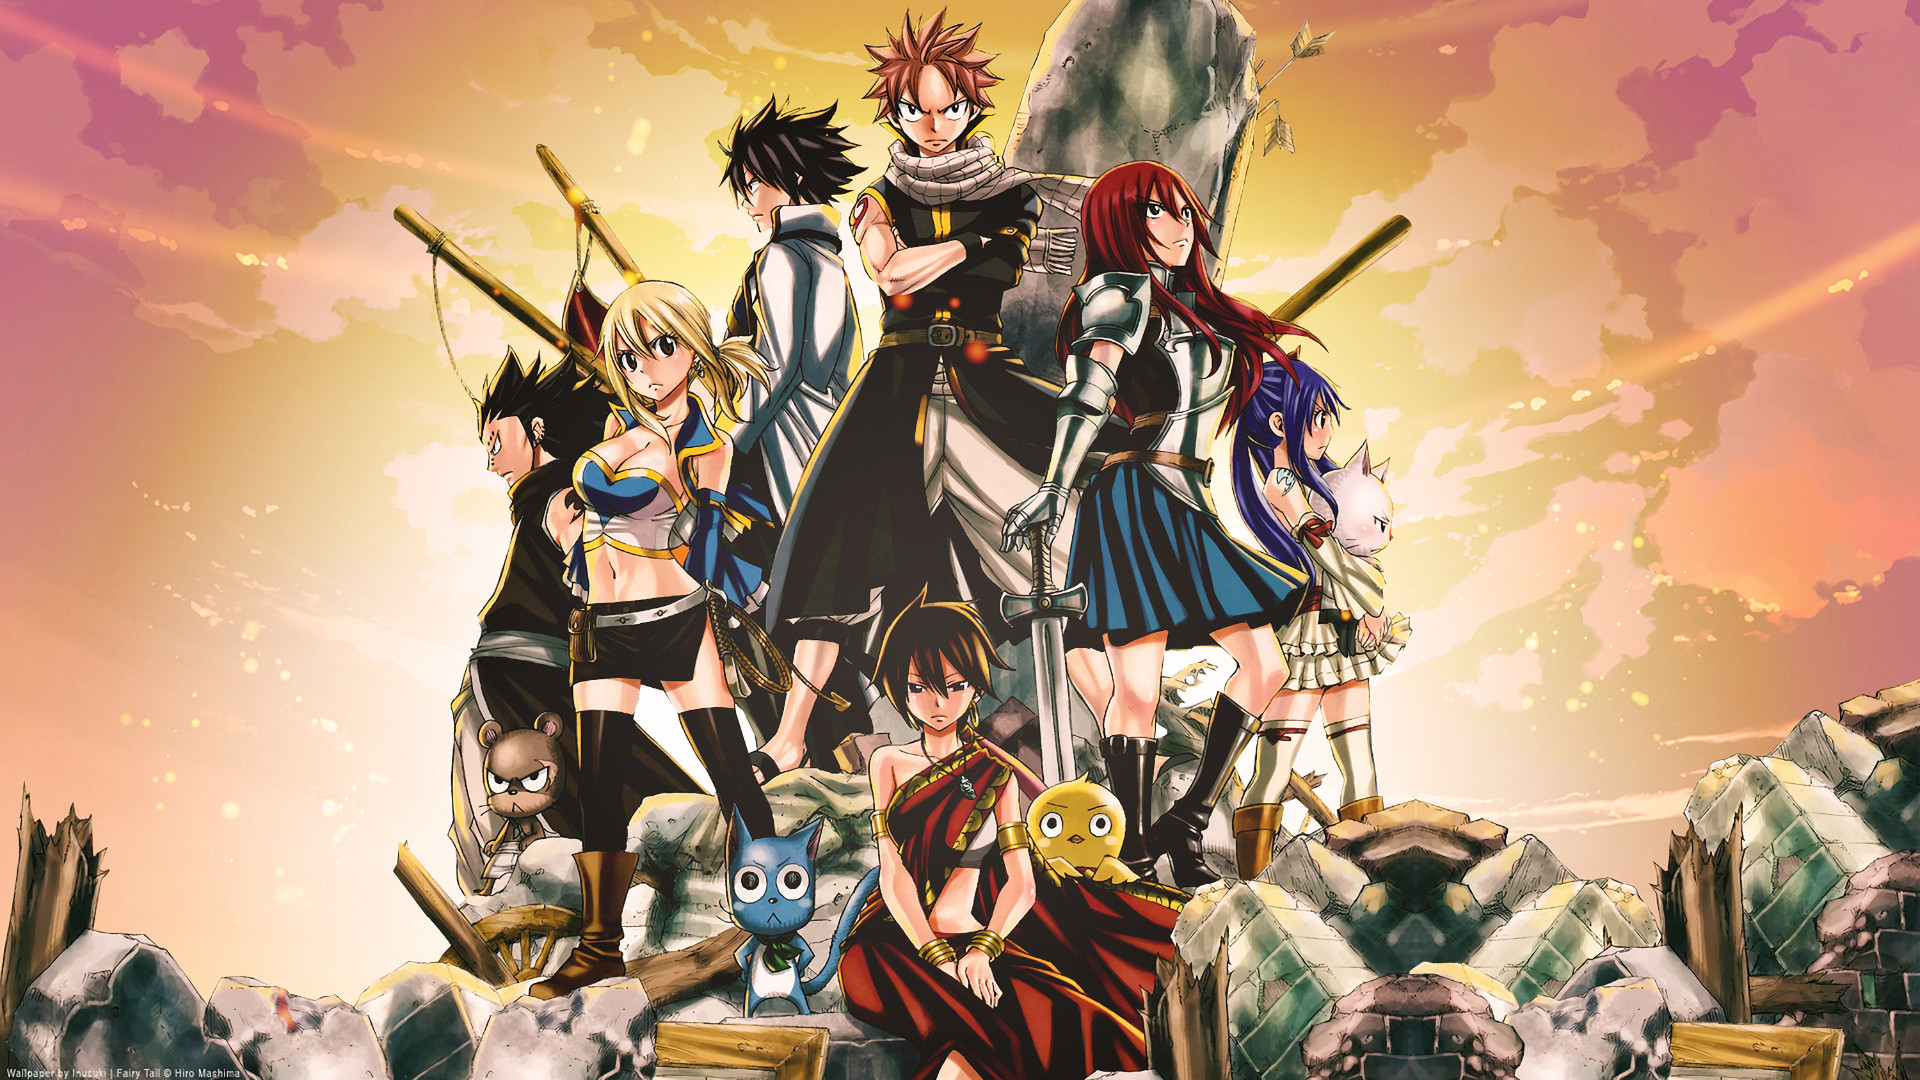 1920x1080 Fairy Tail HD Wallpapers Backgrounds Wallpaper | HD Wallpapers | Pinterest  | Hd wallpaper, Fairy and Wallpaper